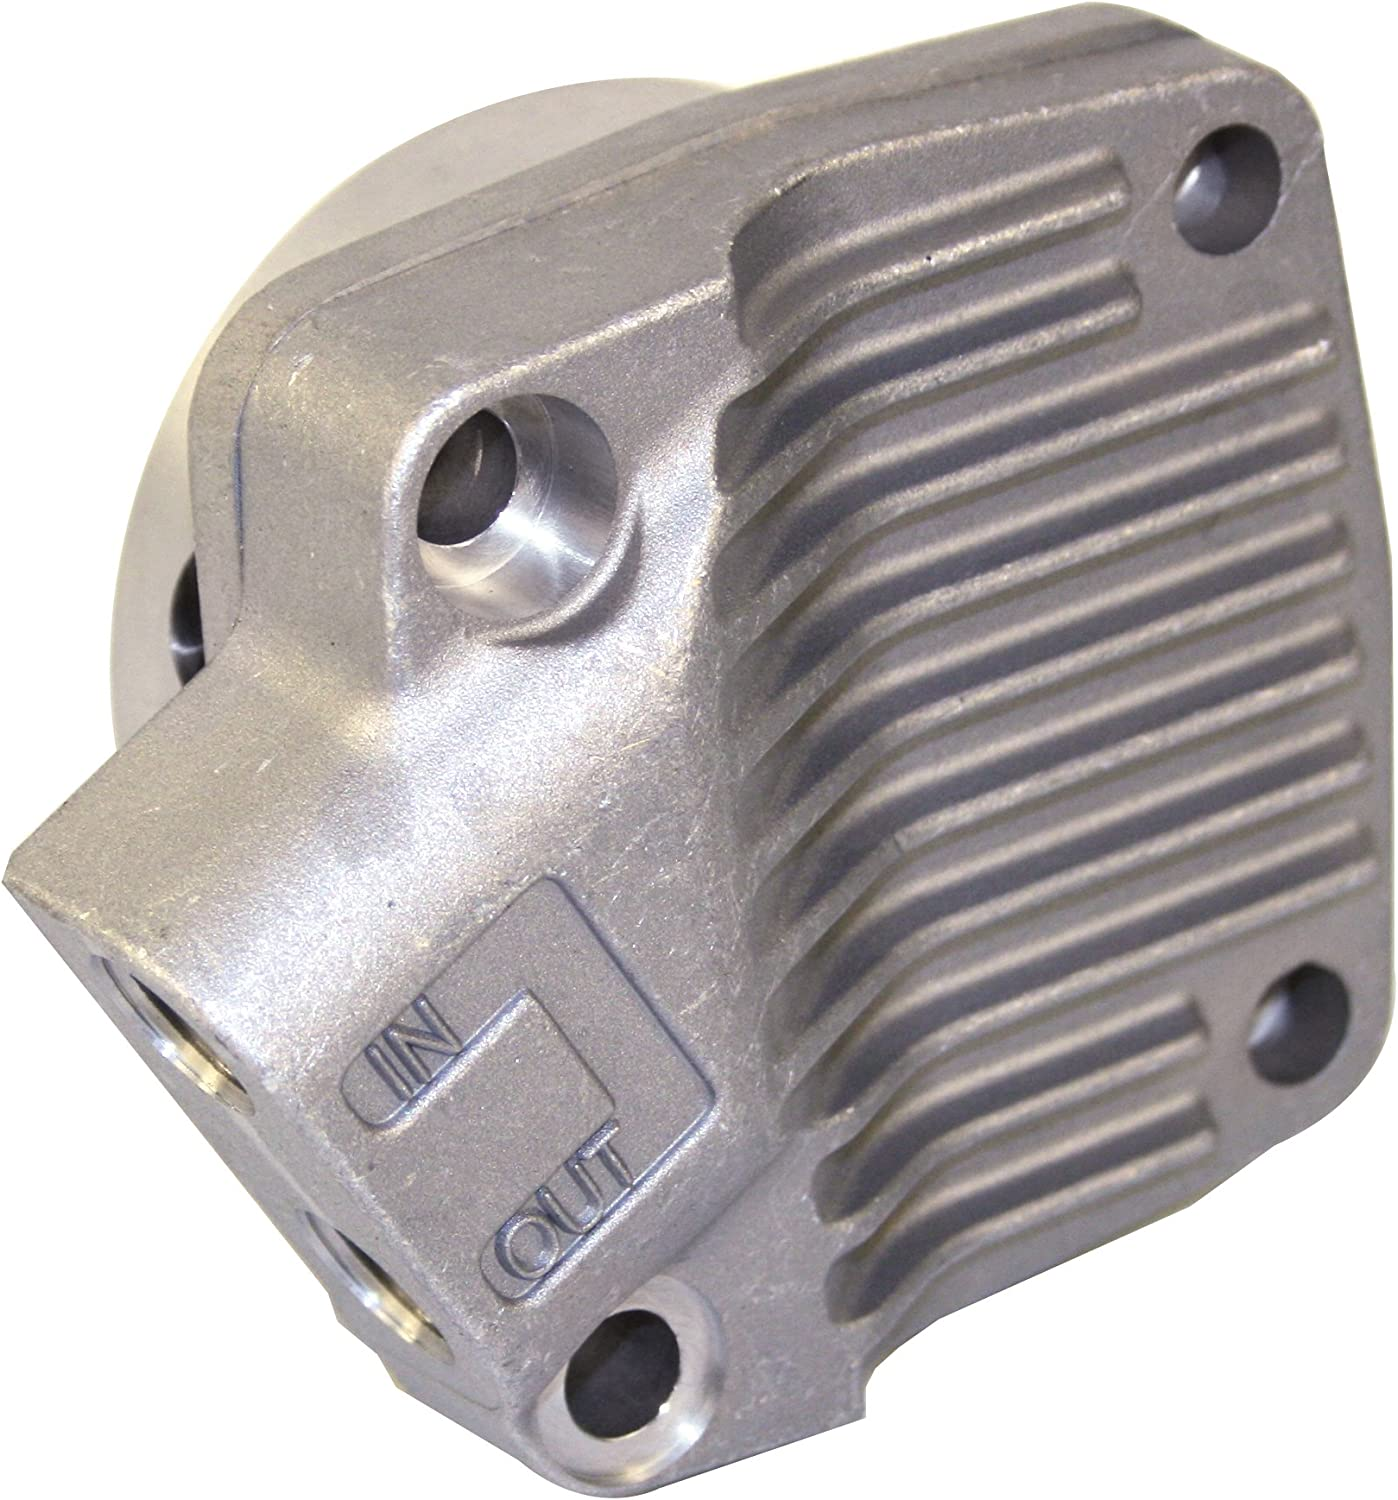 Filter Flow Oil Classic Pump 32mm Gears Milwaukee Mall Cams Dished For Compati 71-79